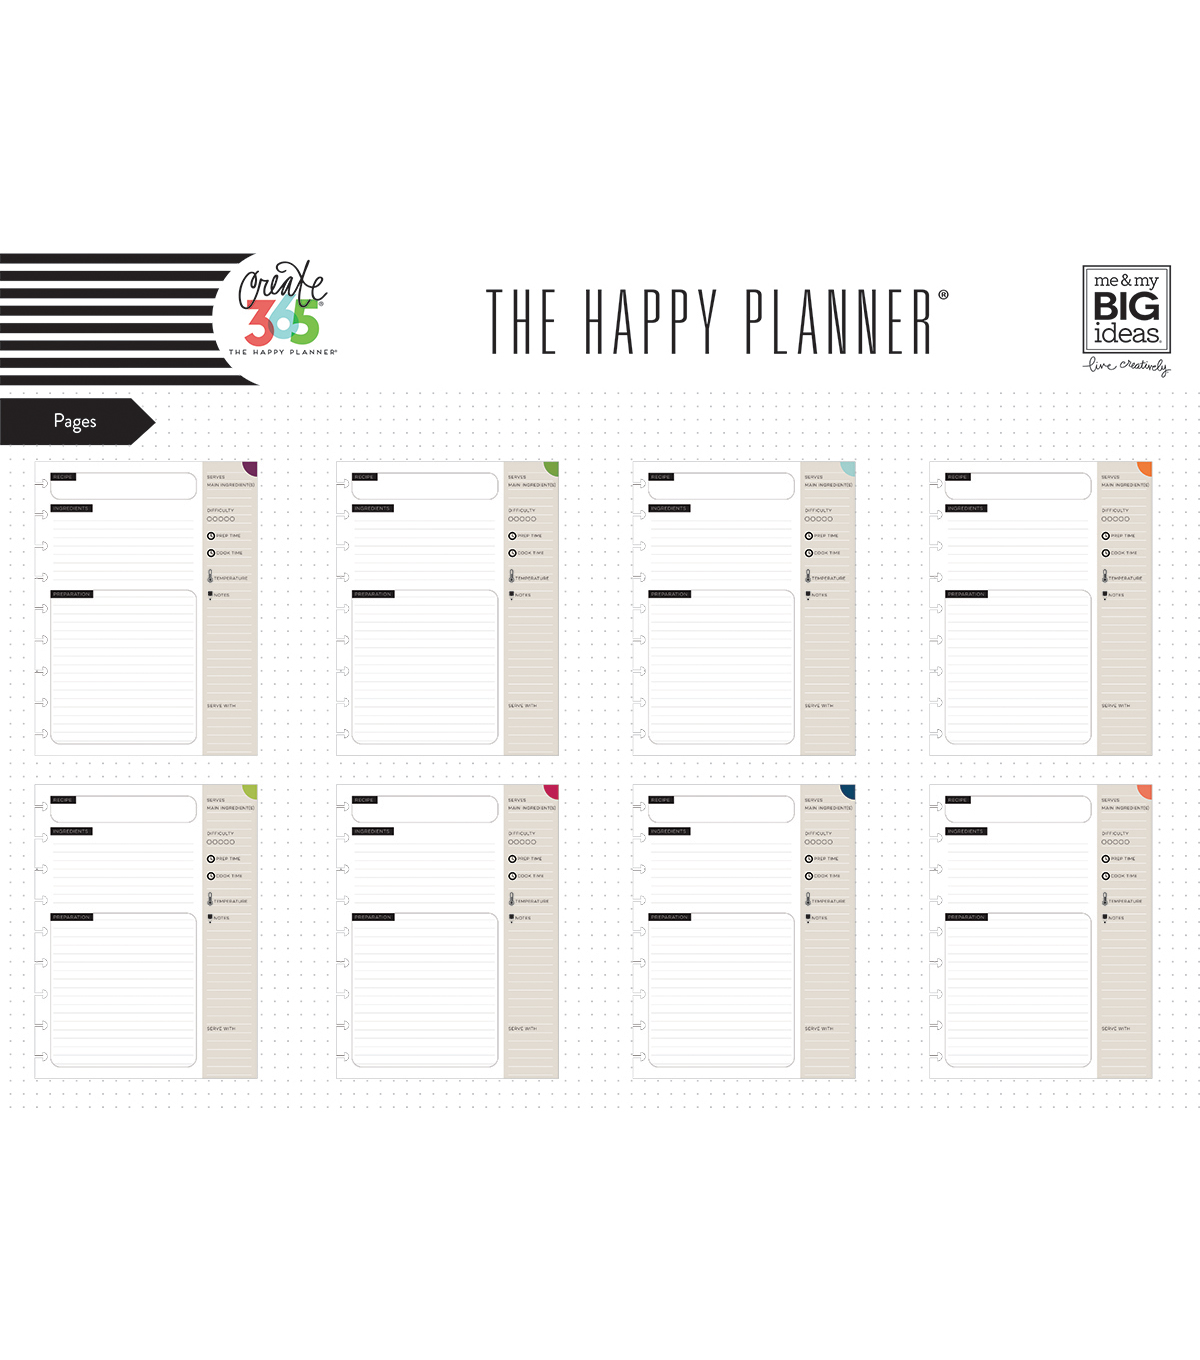 The Happy Planner Recipe Organizer